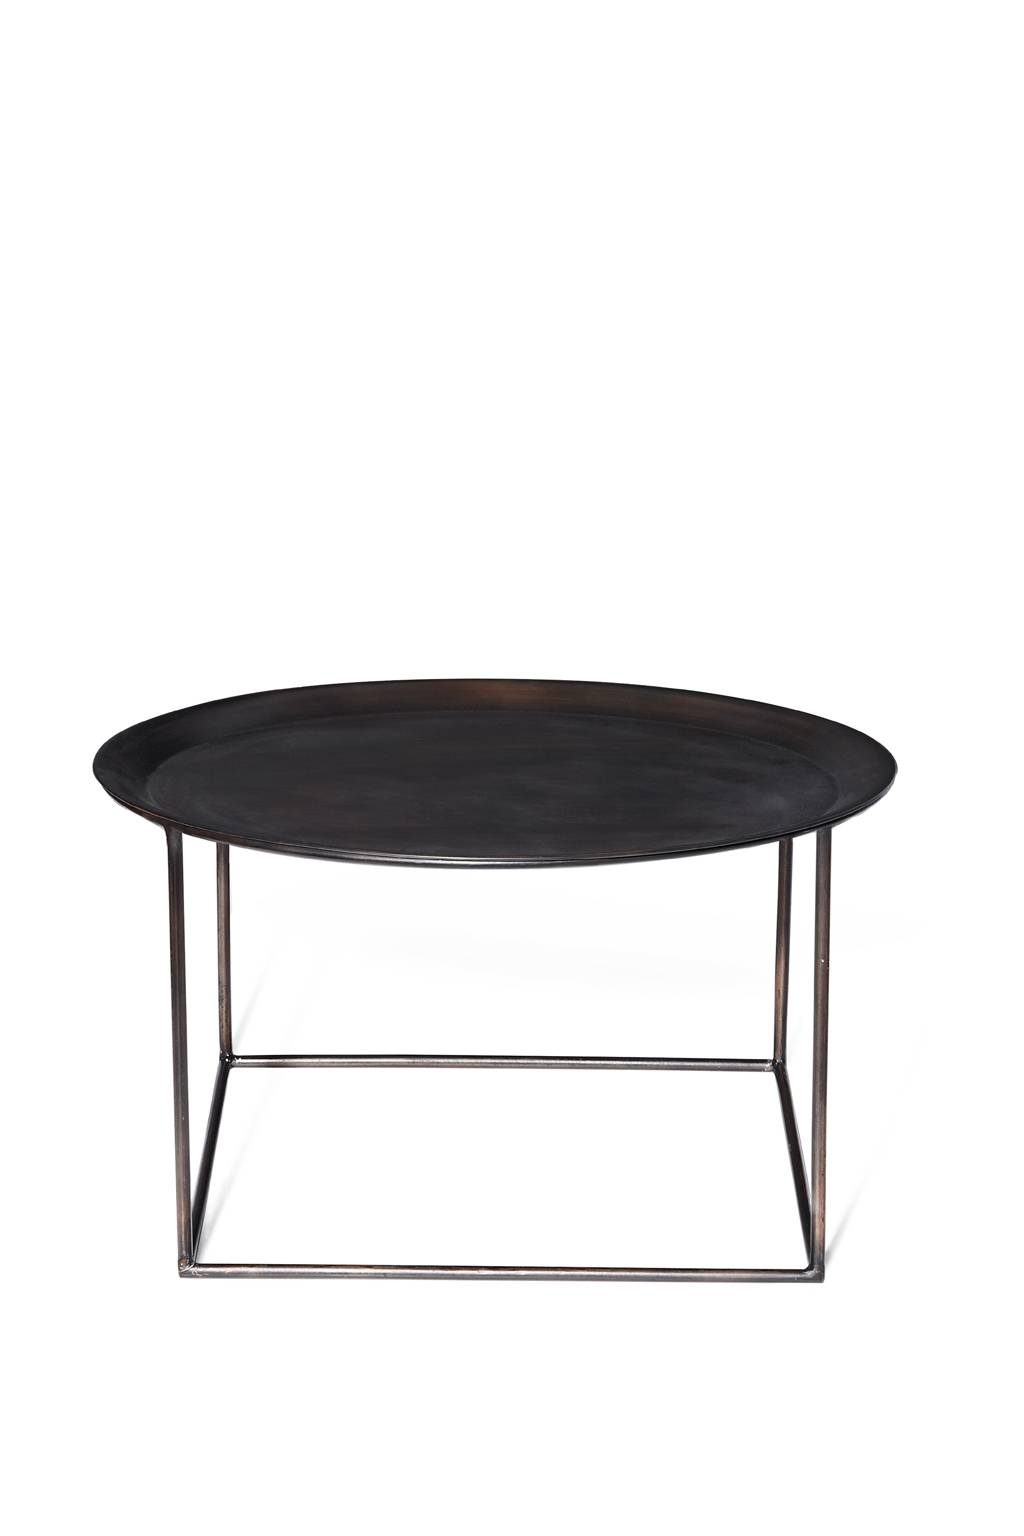 Should I Get A Round Or Square Coffee Table | Coffee Tables Decoration in Round Steel Coffee Tables (Image 28 of 30)